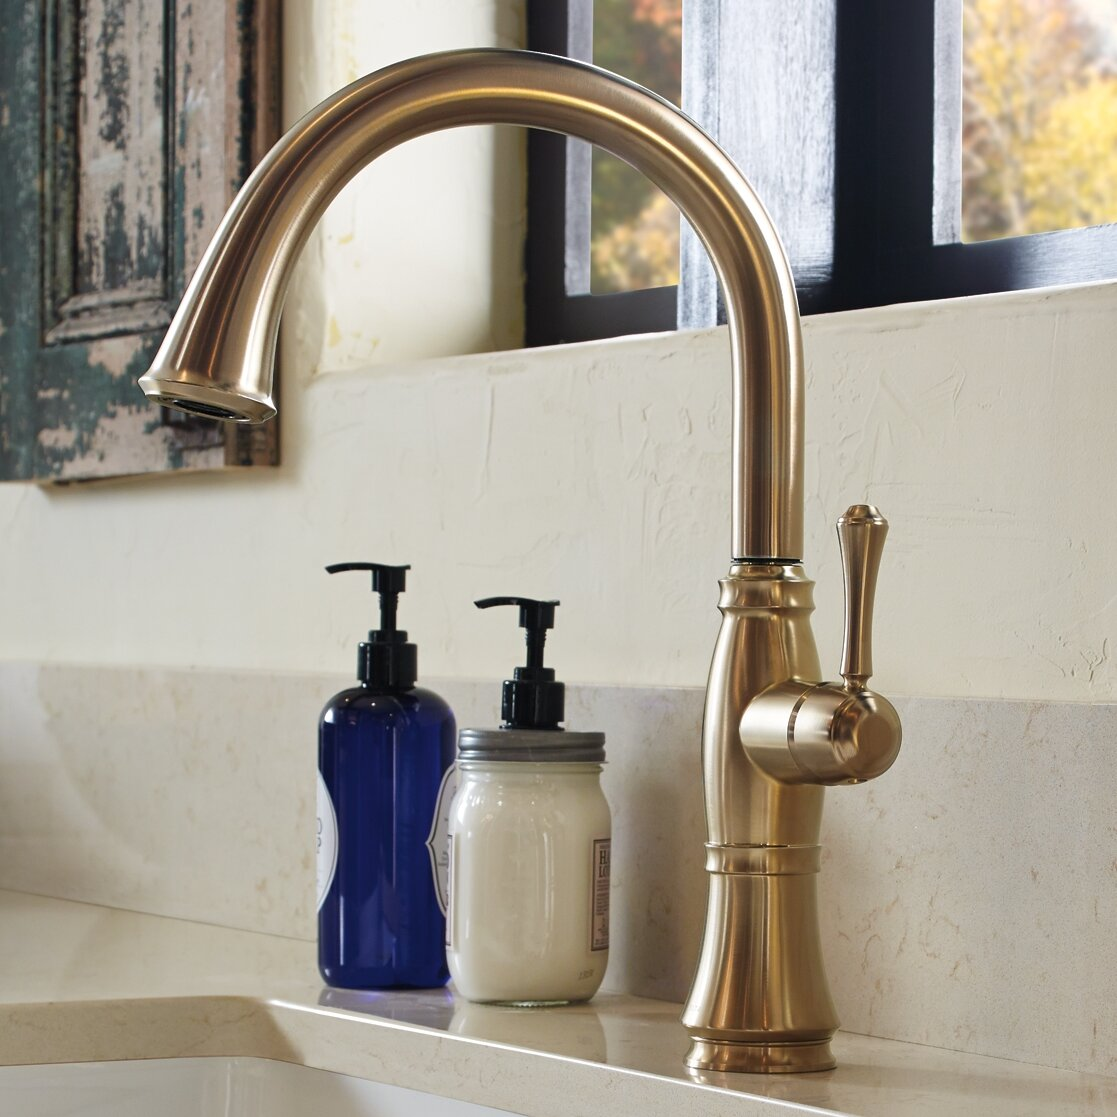 Stupendous Cassidy Single Handle Kitchen Faucet With Side Spray And Diamond Seal Technology Beutiful Home Inspiration Xortanetmahrainfo